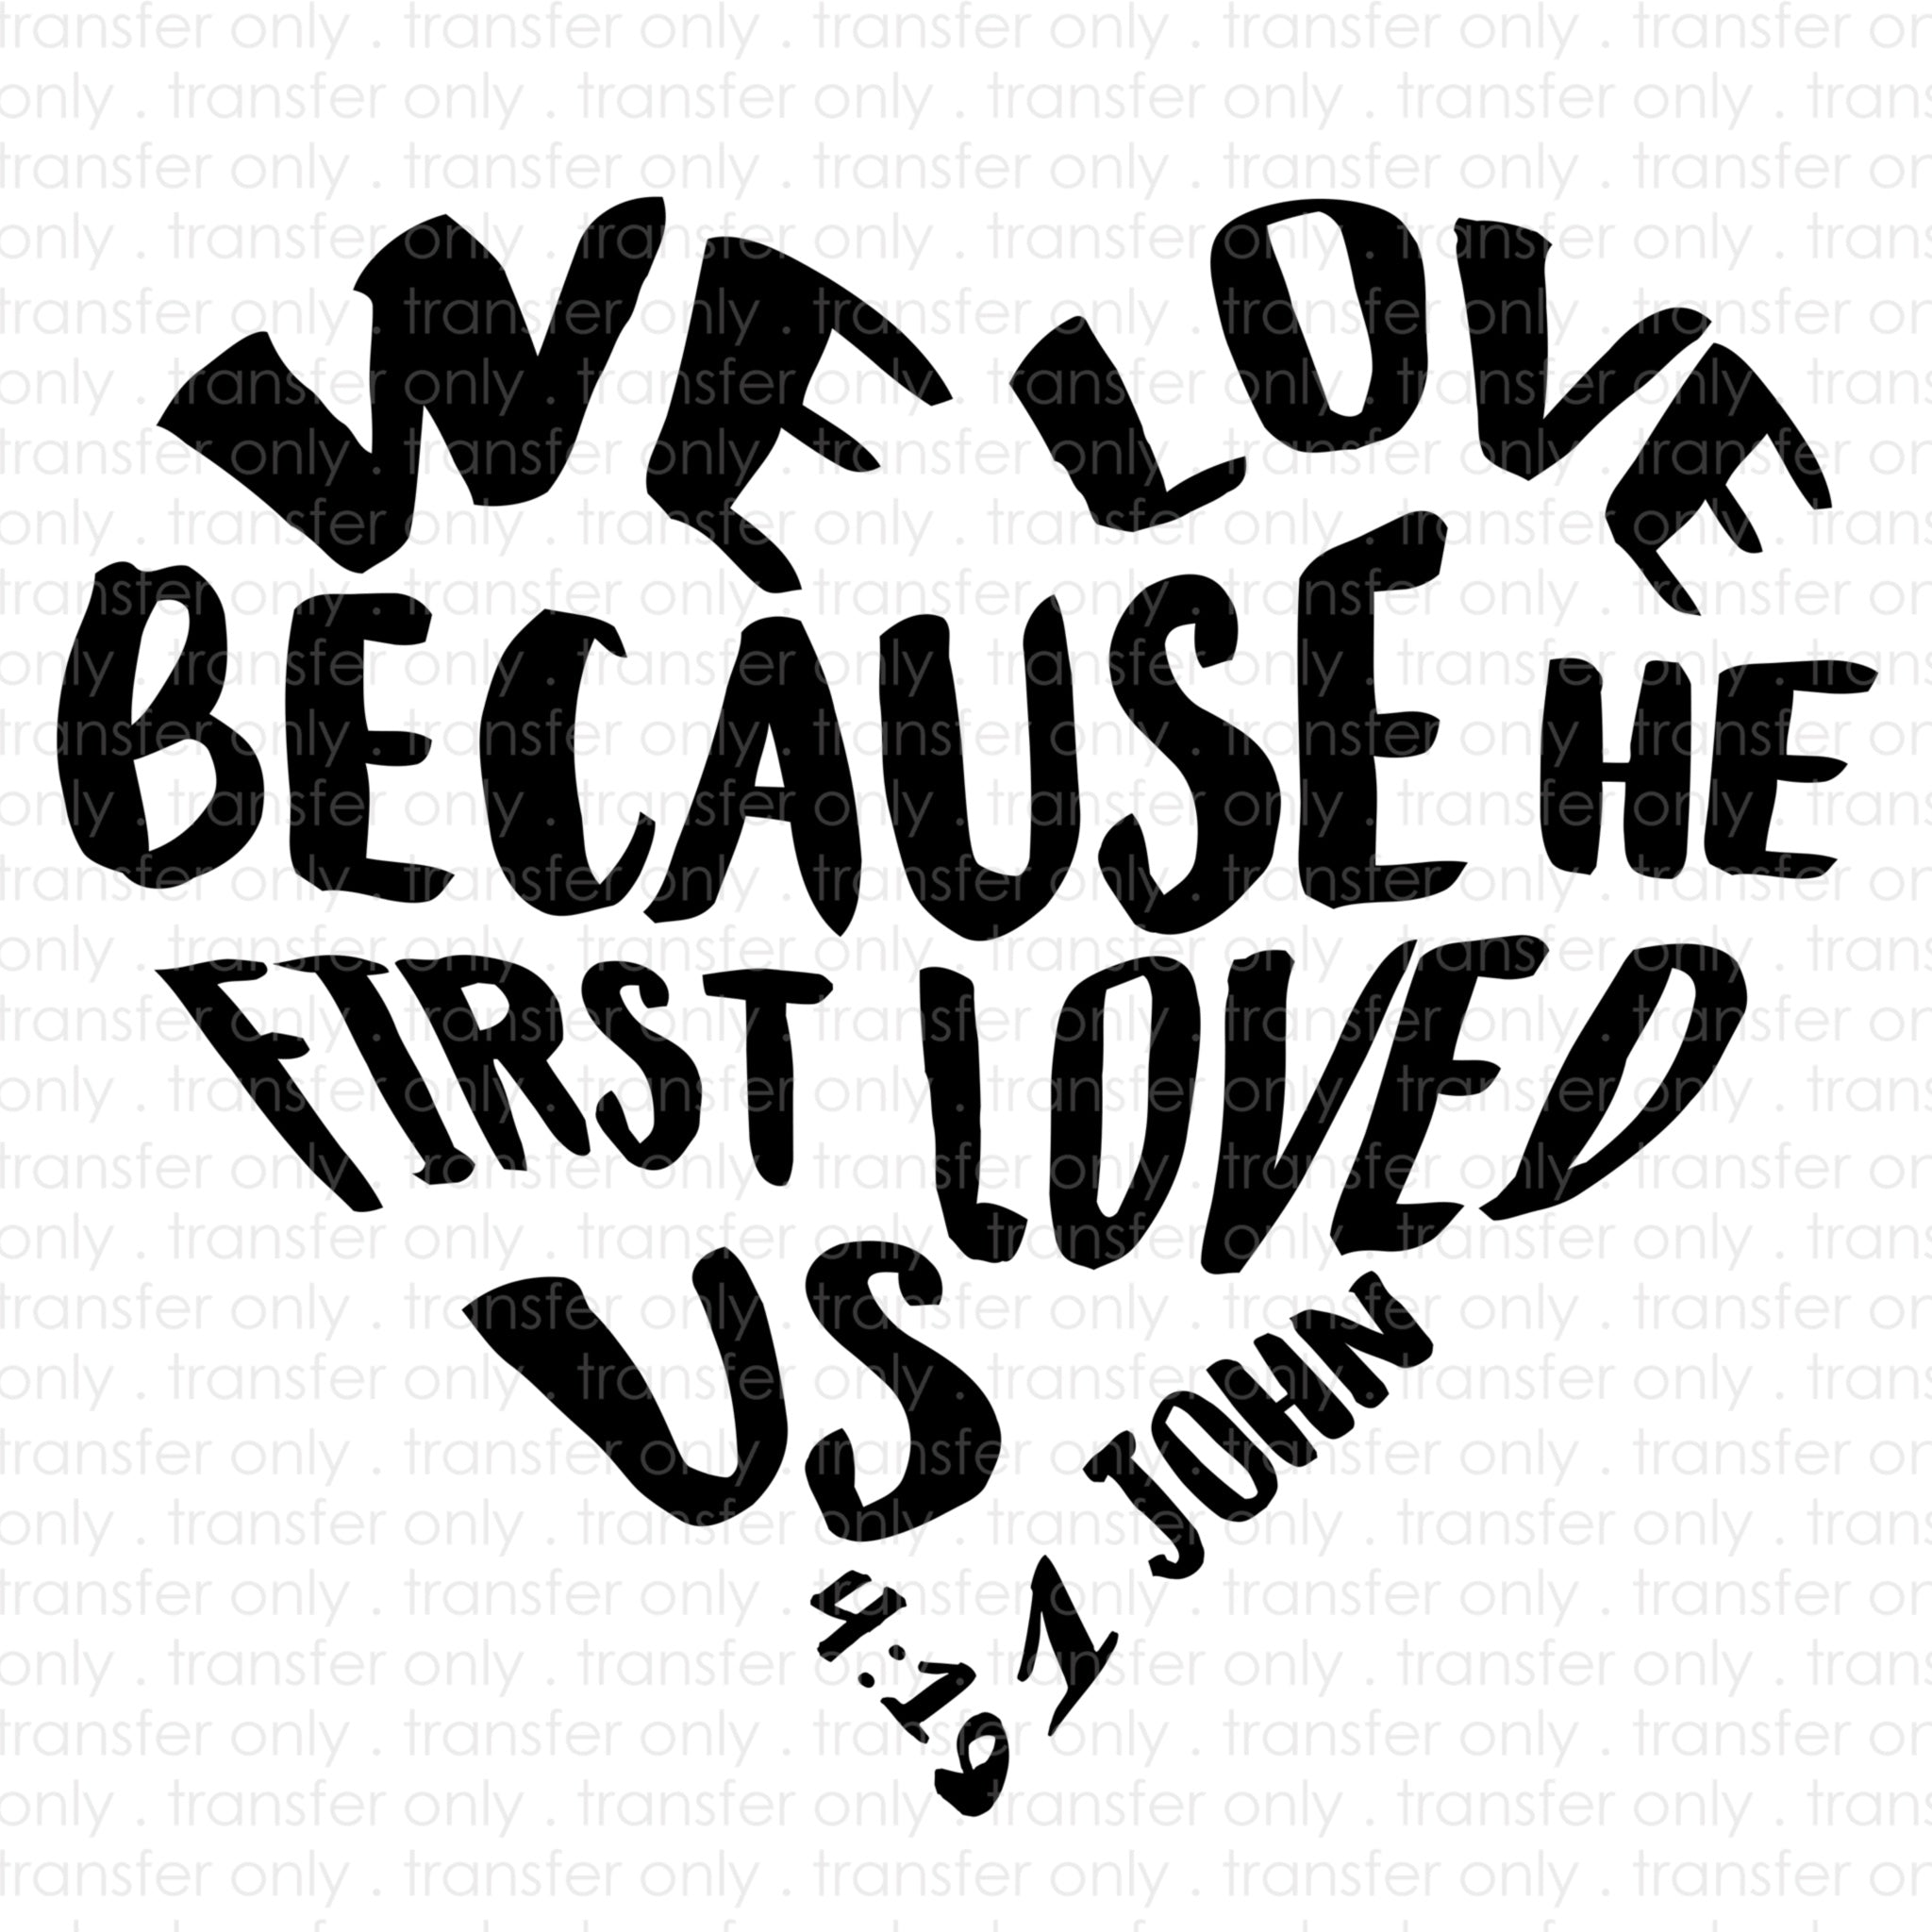 He First Loved Us Heart (Sublimation Transfer)